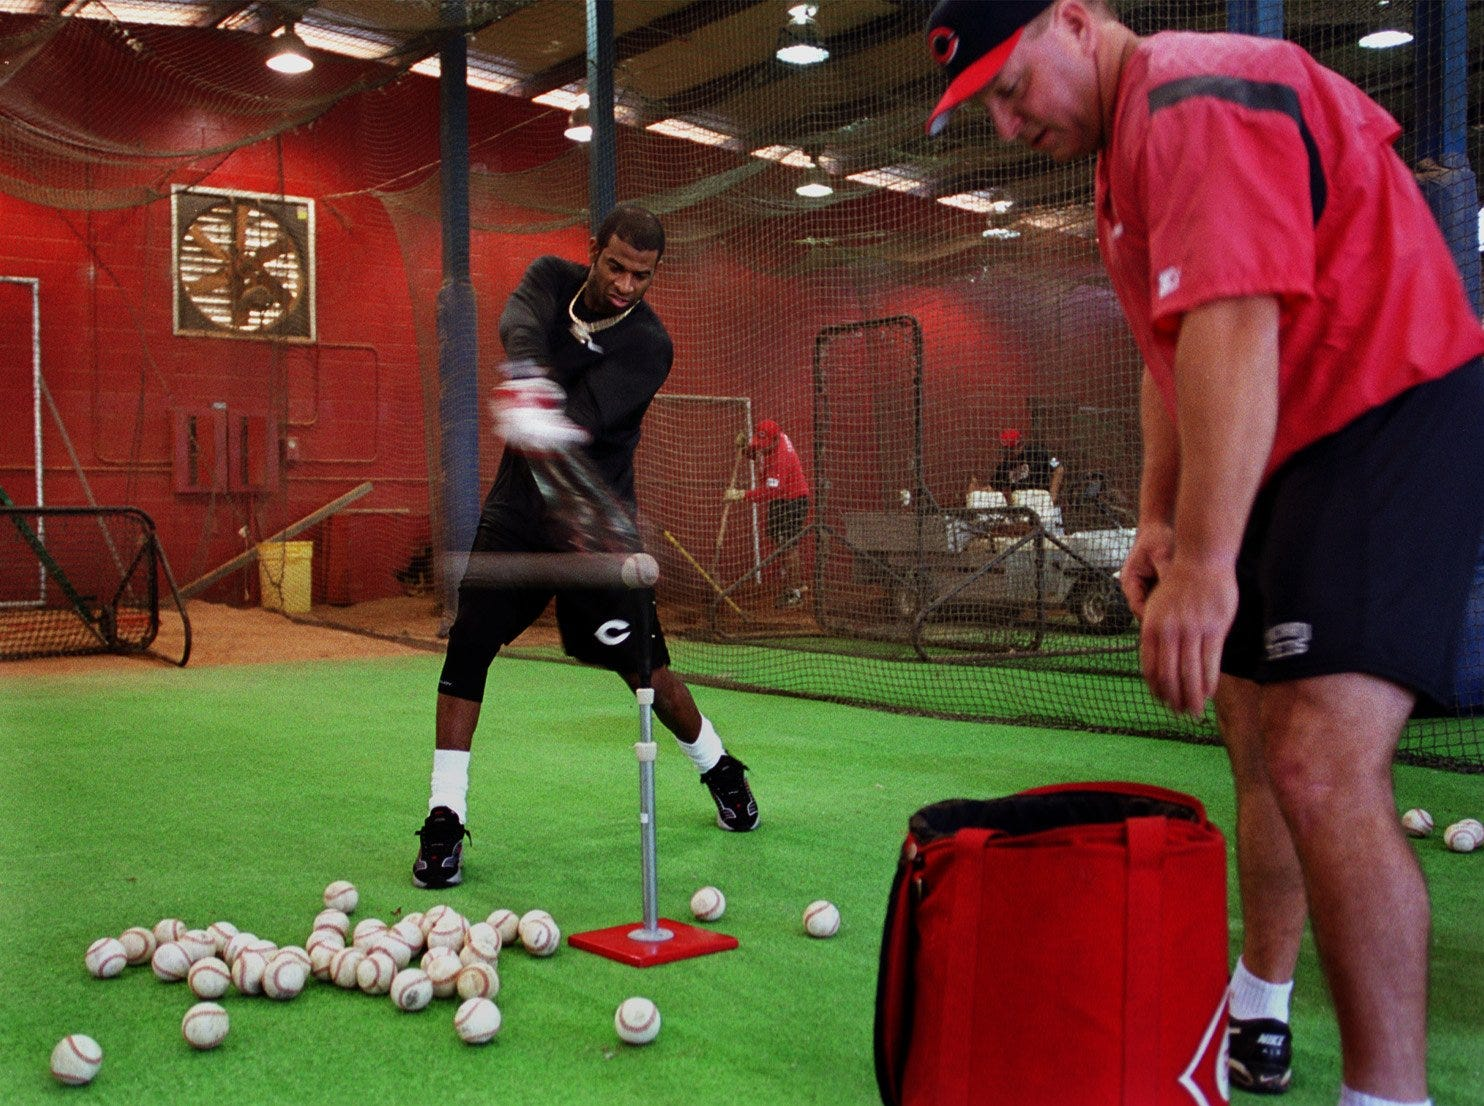 Text: 2000.0216.06.01 REDS Cincinnati Reds spring training invitee Deion Sanders takes a few swings off the batting tee as Reds coach Donnie Scott sets up the balls for him. Sanders is keeping lower profile while quietly working behind the scenes out of the view of the public. He is trying to get himself in baseball condition and working the kinks out of his bothersome knee. Cincinnati Enquirer/Michael E. Keating